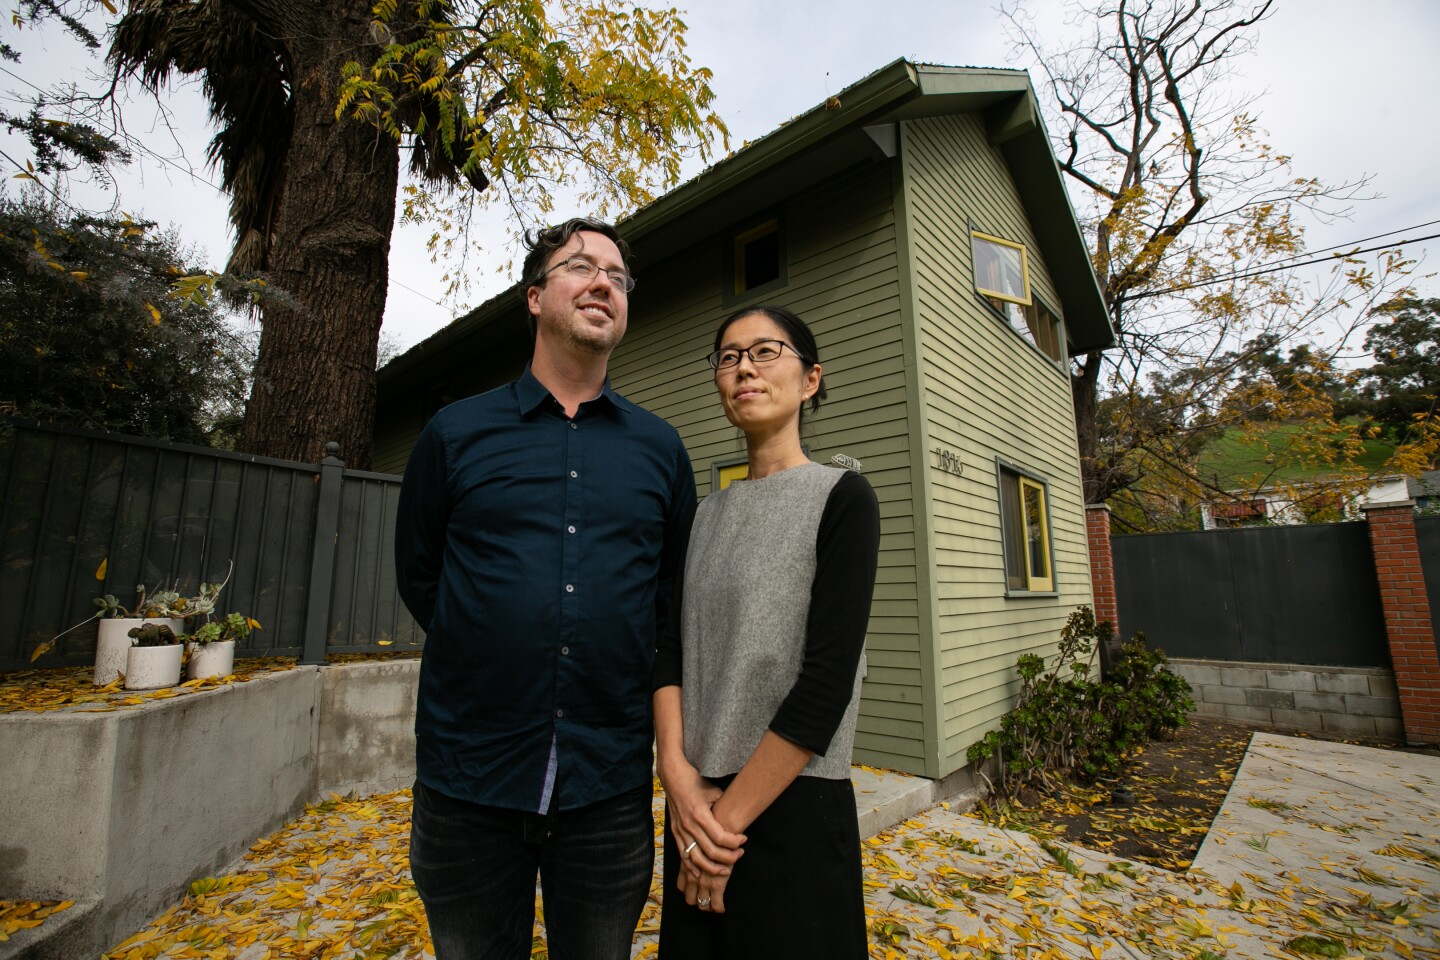 Bo Sundius, 44, and Hisako Ichiki, 44, owners of Bunch Design, a L.A. based husband and wife design firm,  shows one of their Accessory Dwelling Units (ADU's) on Tuesday, December 10, 2019.